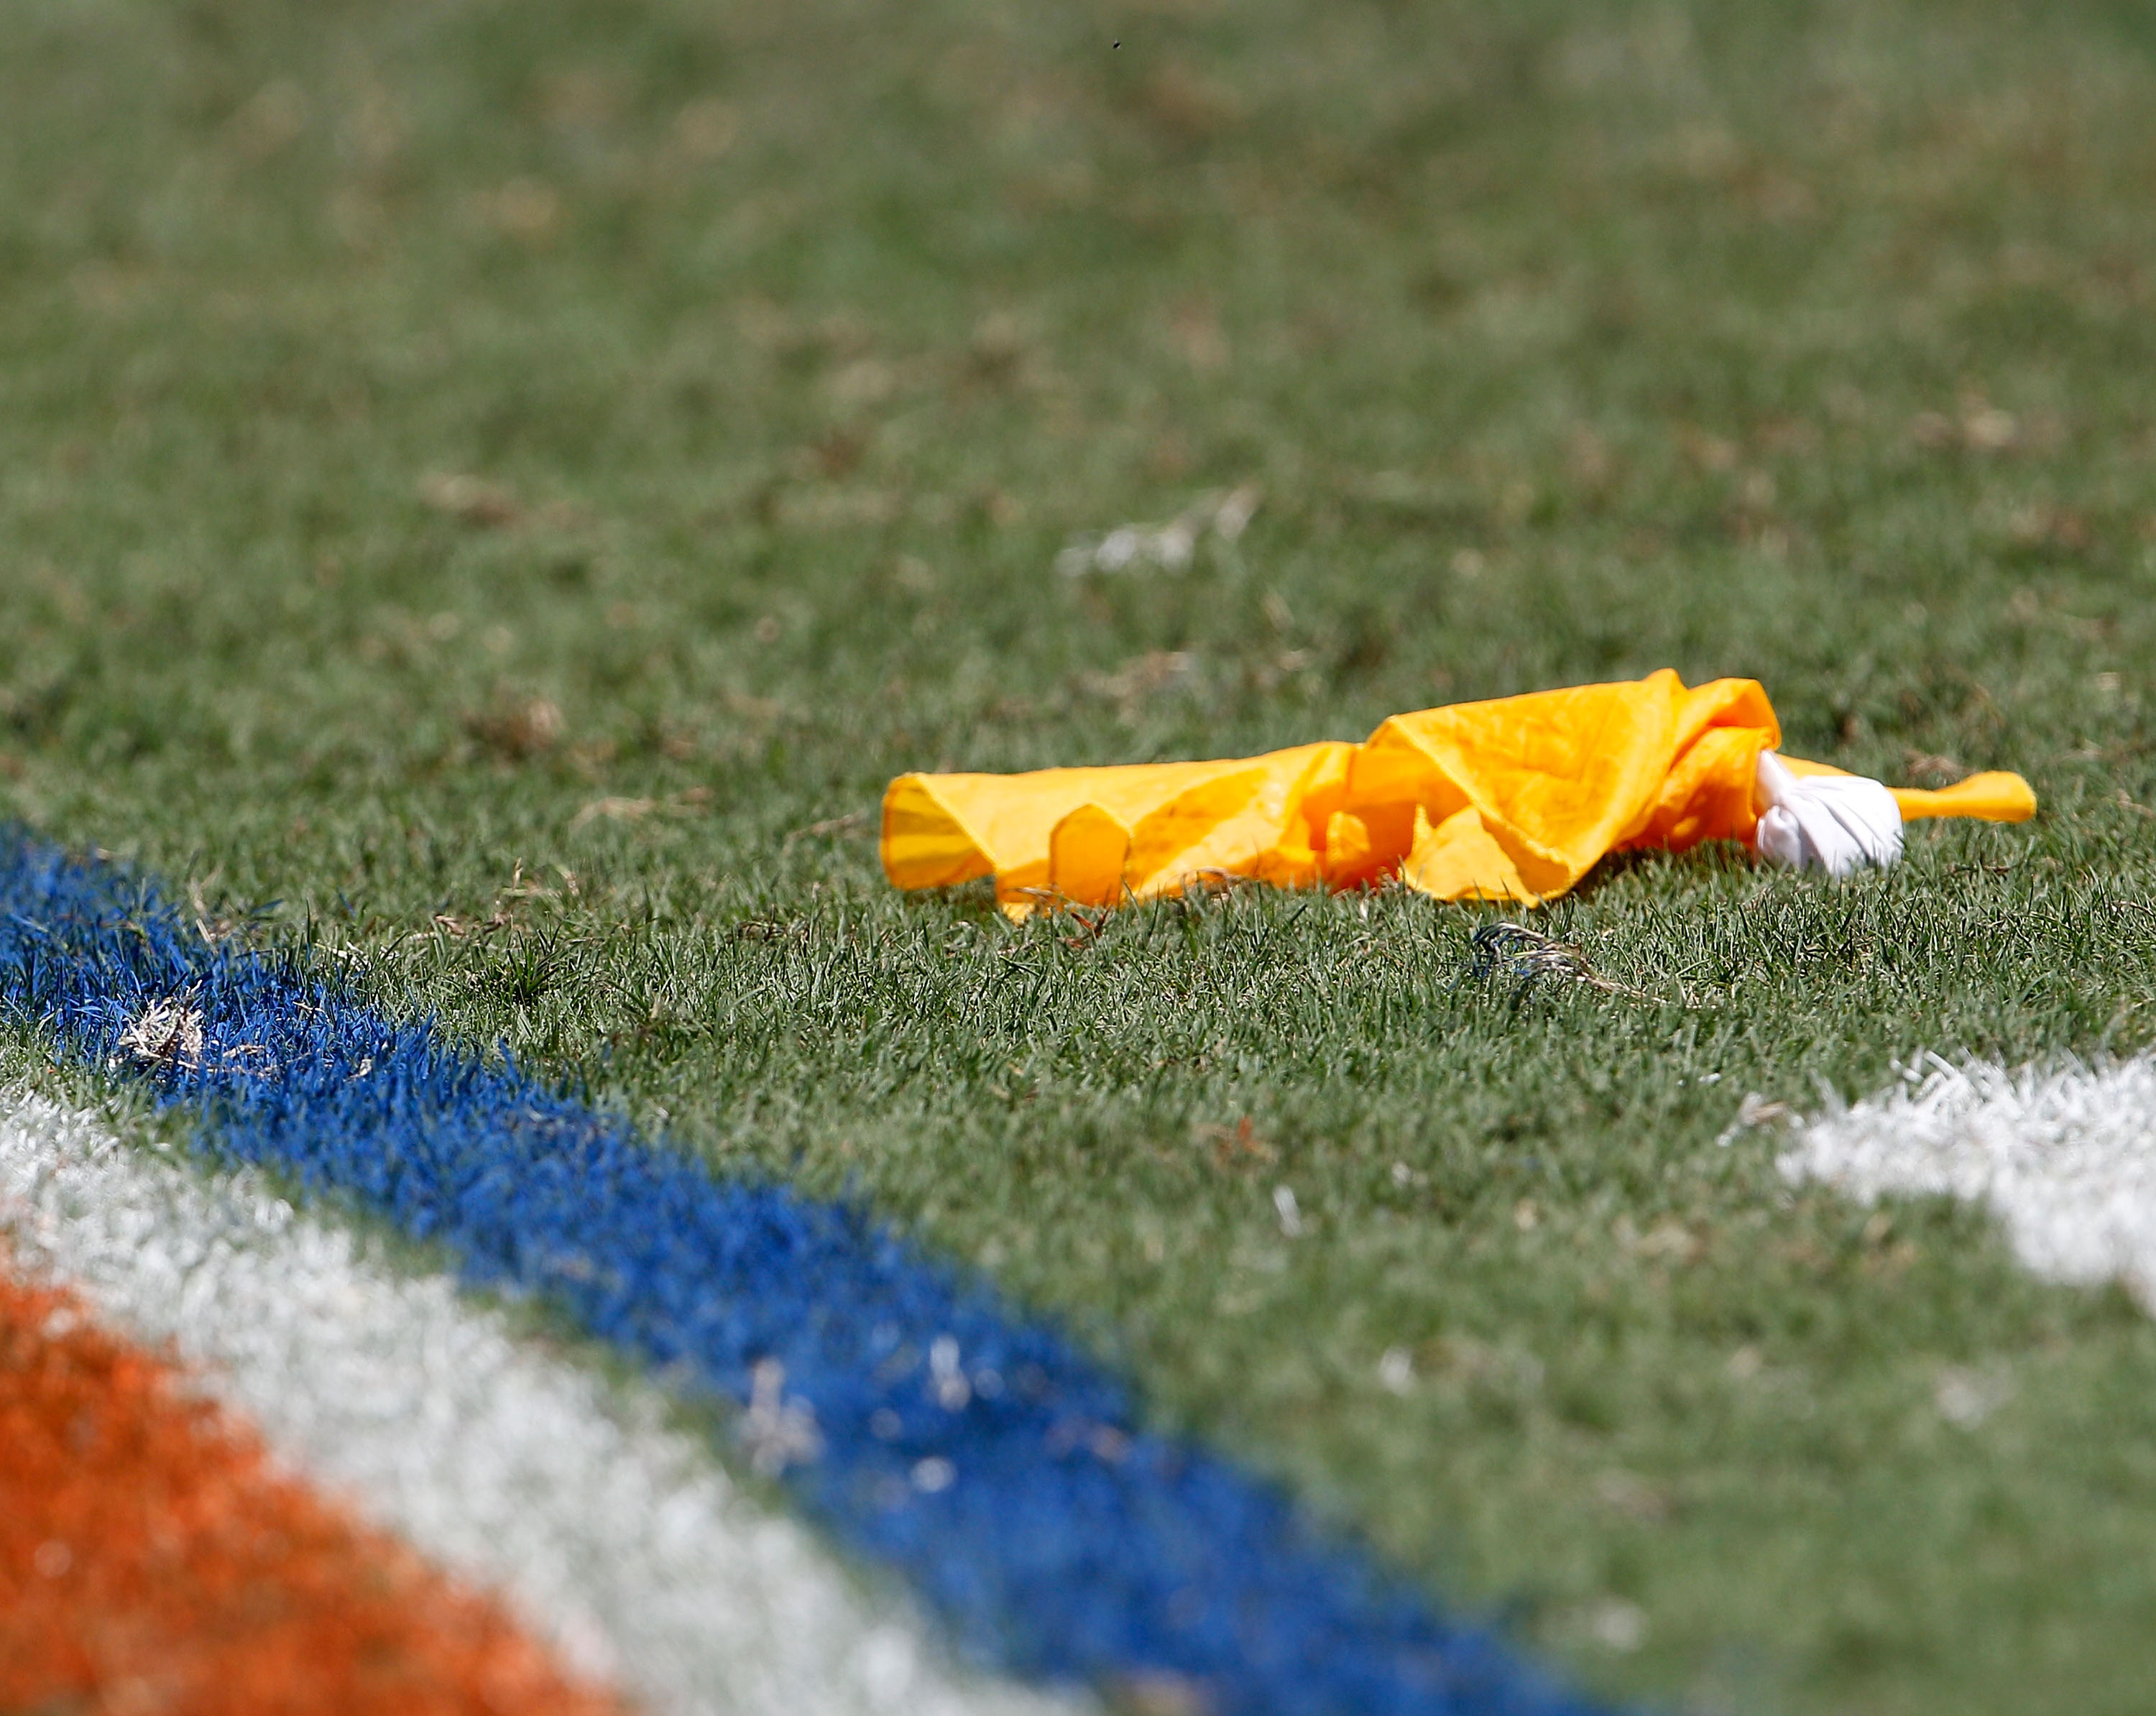 GAINESVILLE, FL - SEPTEMBER 11:  A penalty flag lies on the field during a game between the South Florida Bulls and the Florida Gators at Ben Hill Griffin Stadium on September 11, 2010 in Gainesville, Florida.  (Photo by Sam Greenwood/Getty Images)